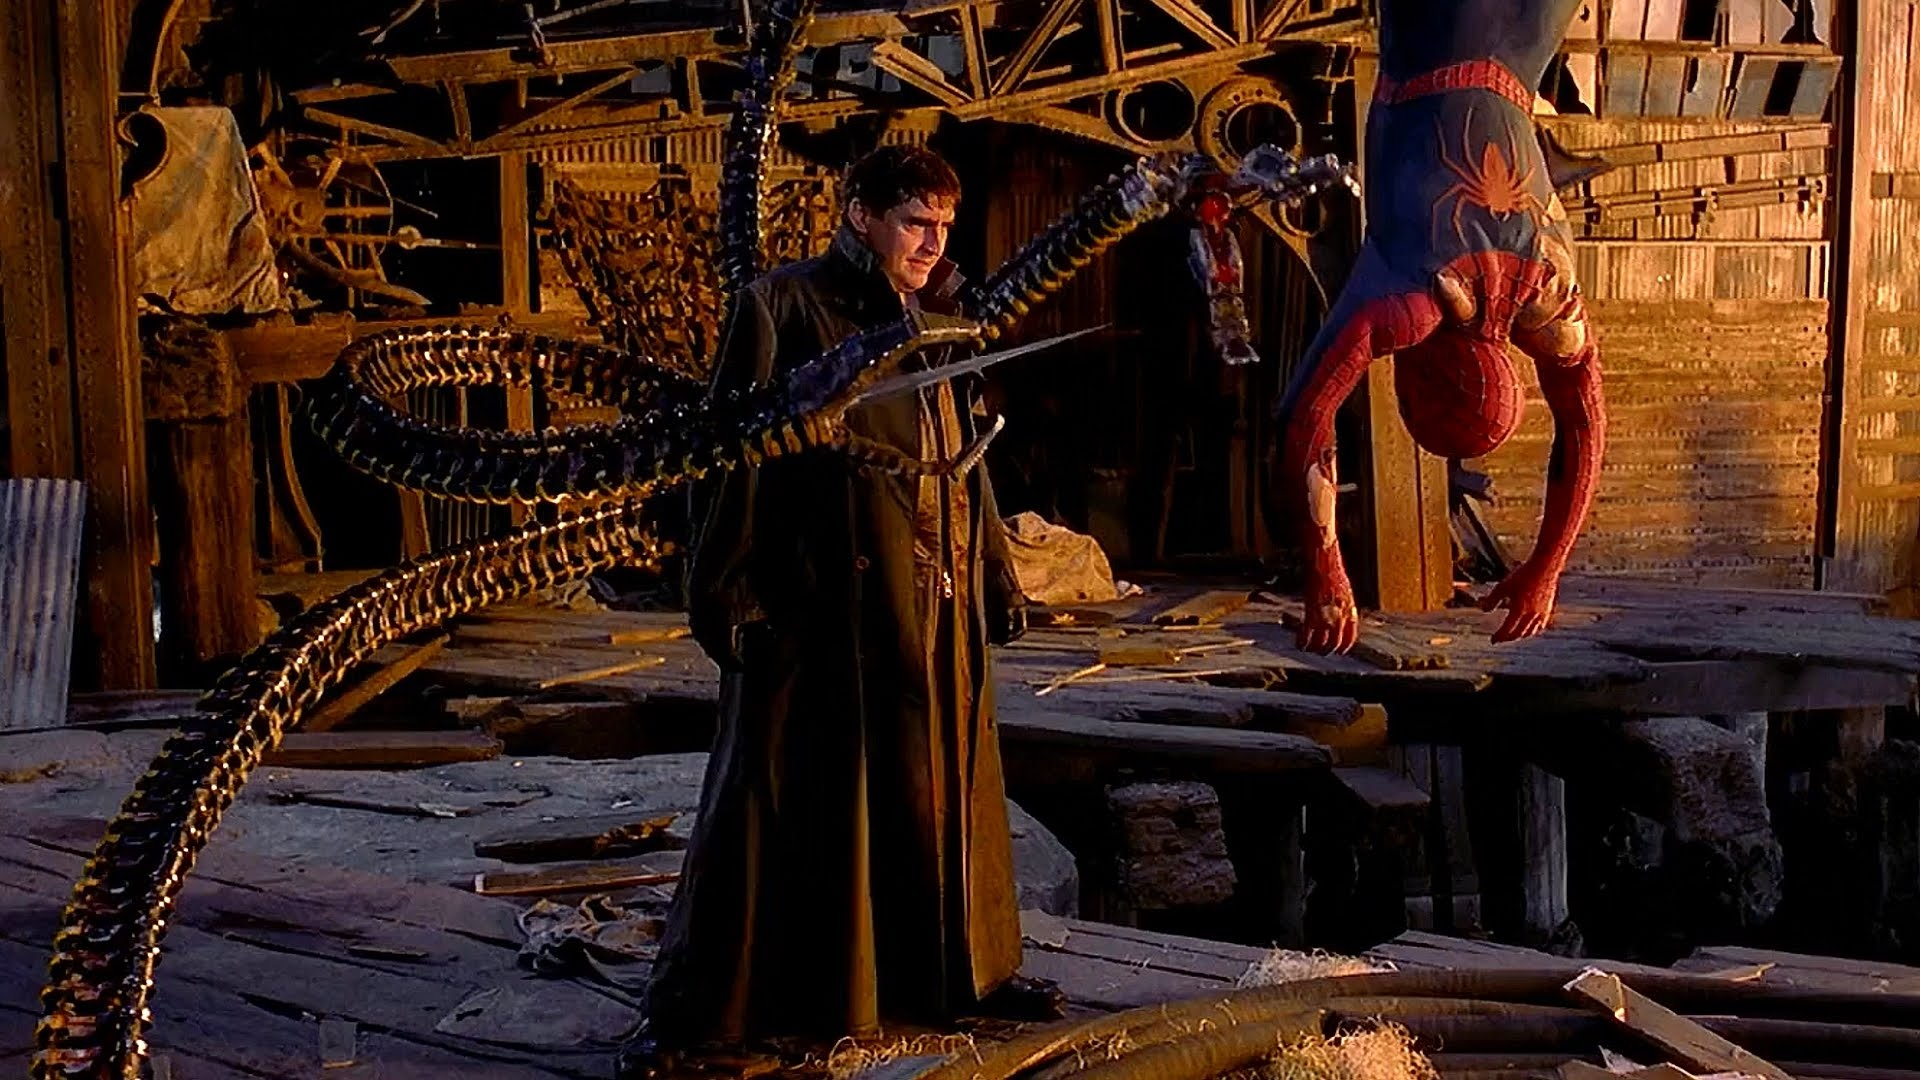 Dr Octopus (Alfred Molina) holds Spider-Man (Tobey Maguire) captive in Spider-Man 2 (2004)